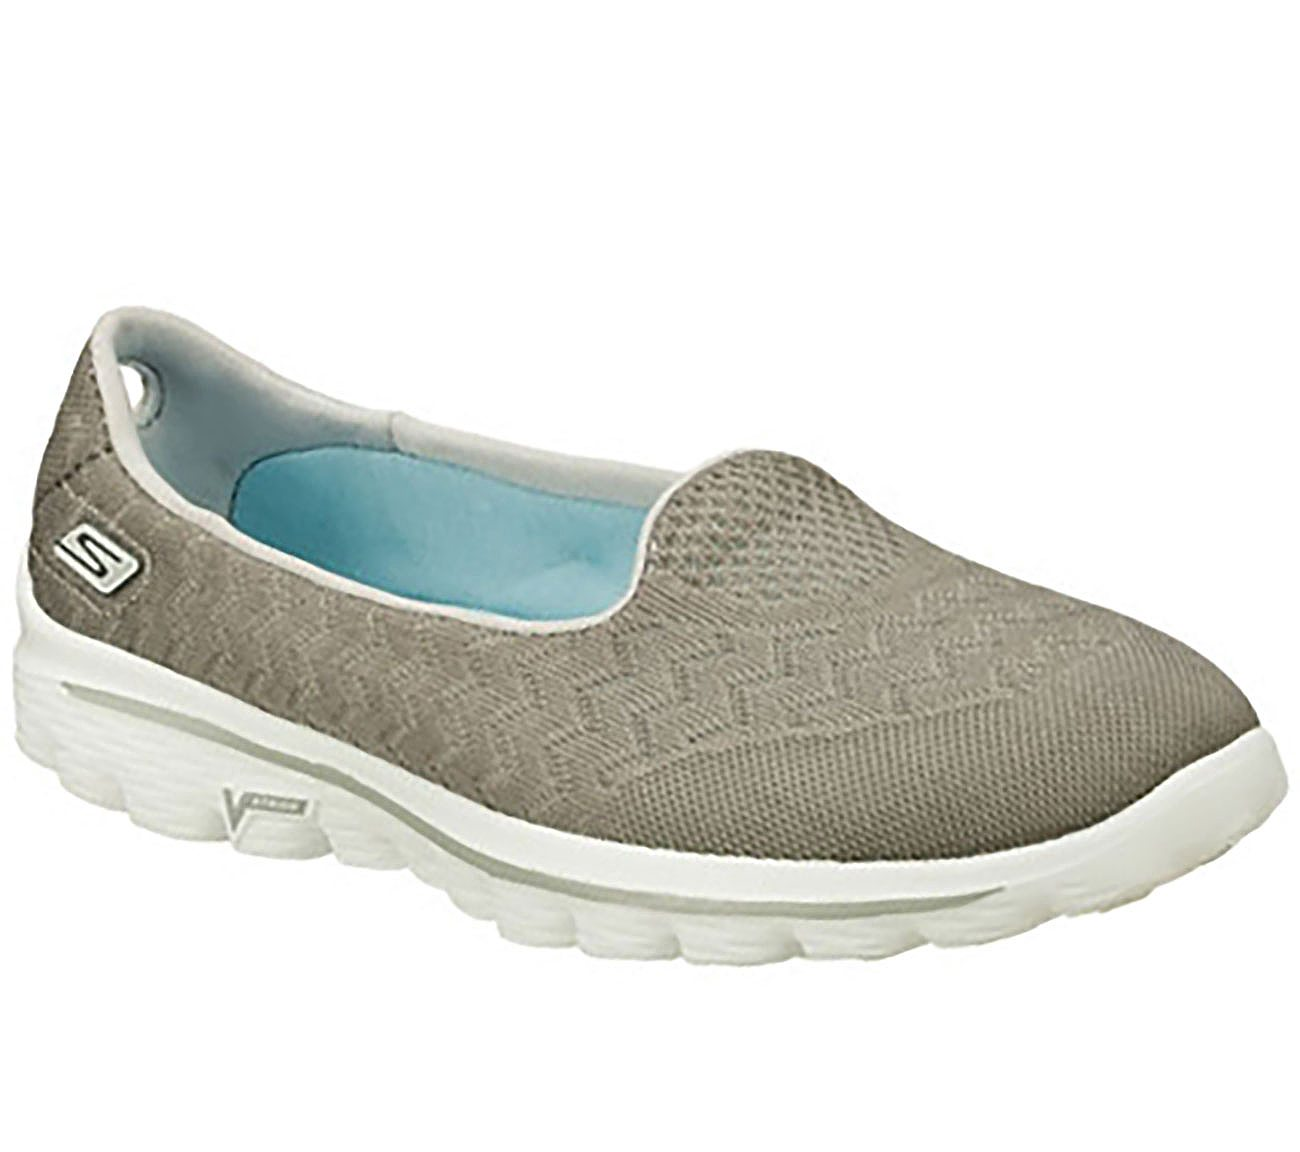 Skechers GOwalk 2 - Axis. $62.00. Hover to zoom. Gray